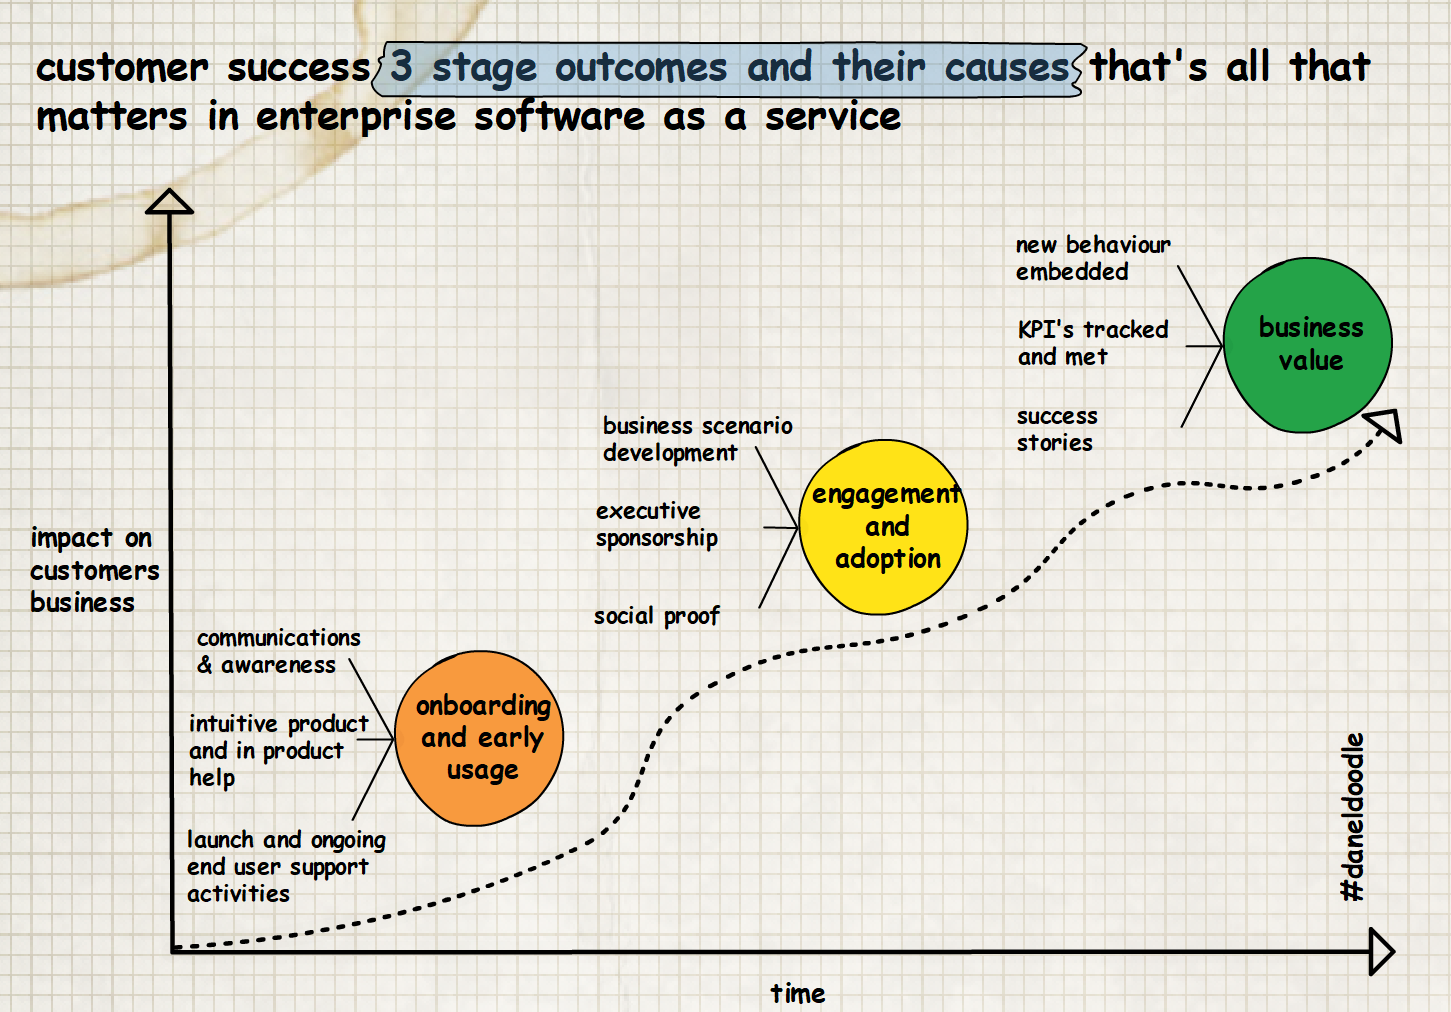 Customer Success outcomes and their causes